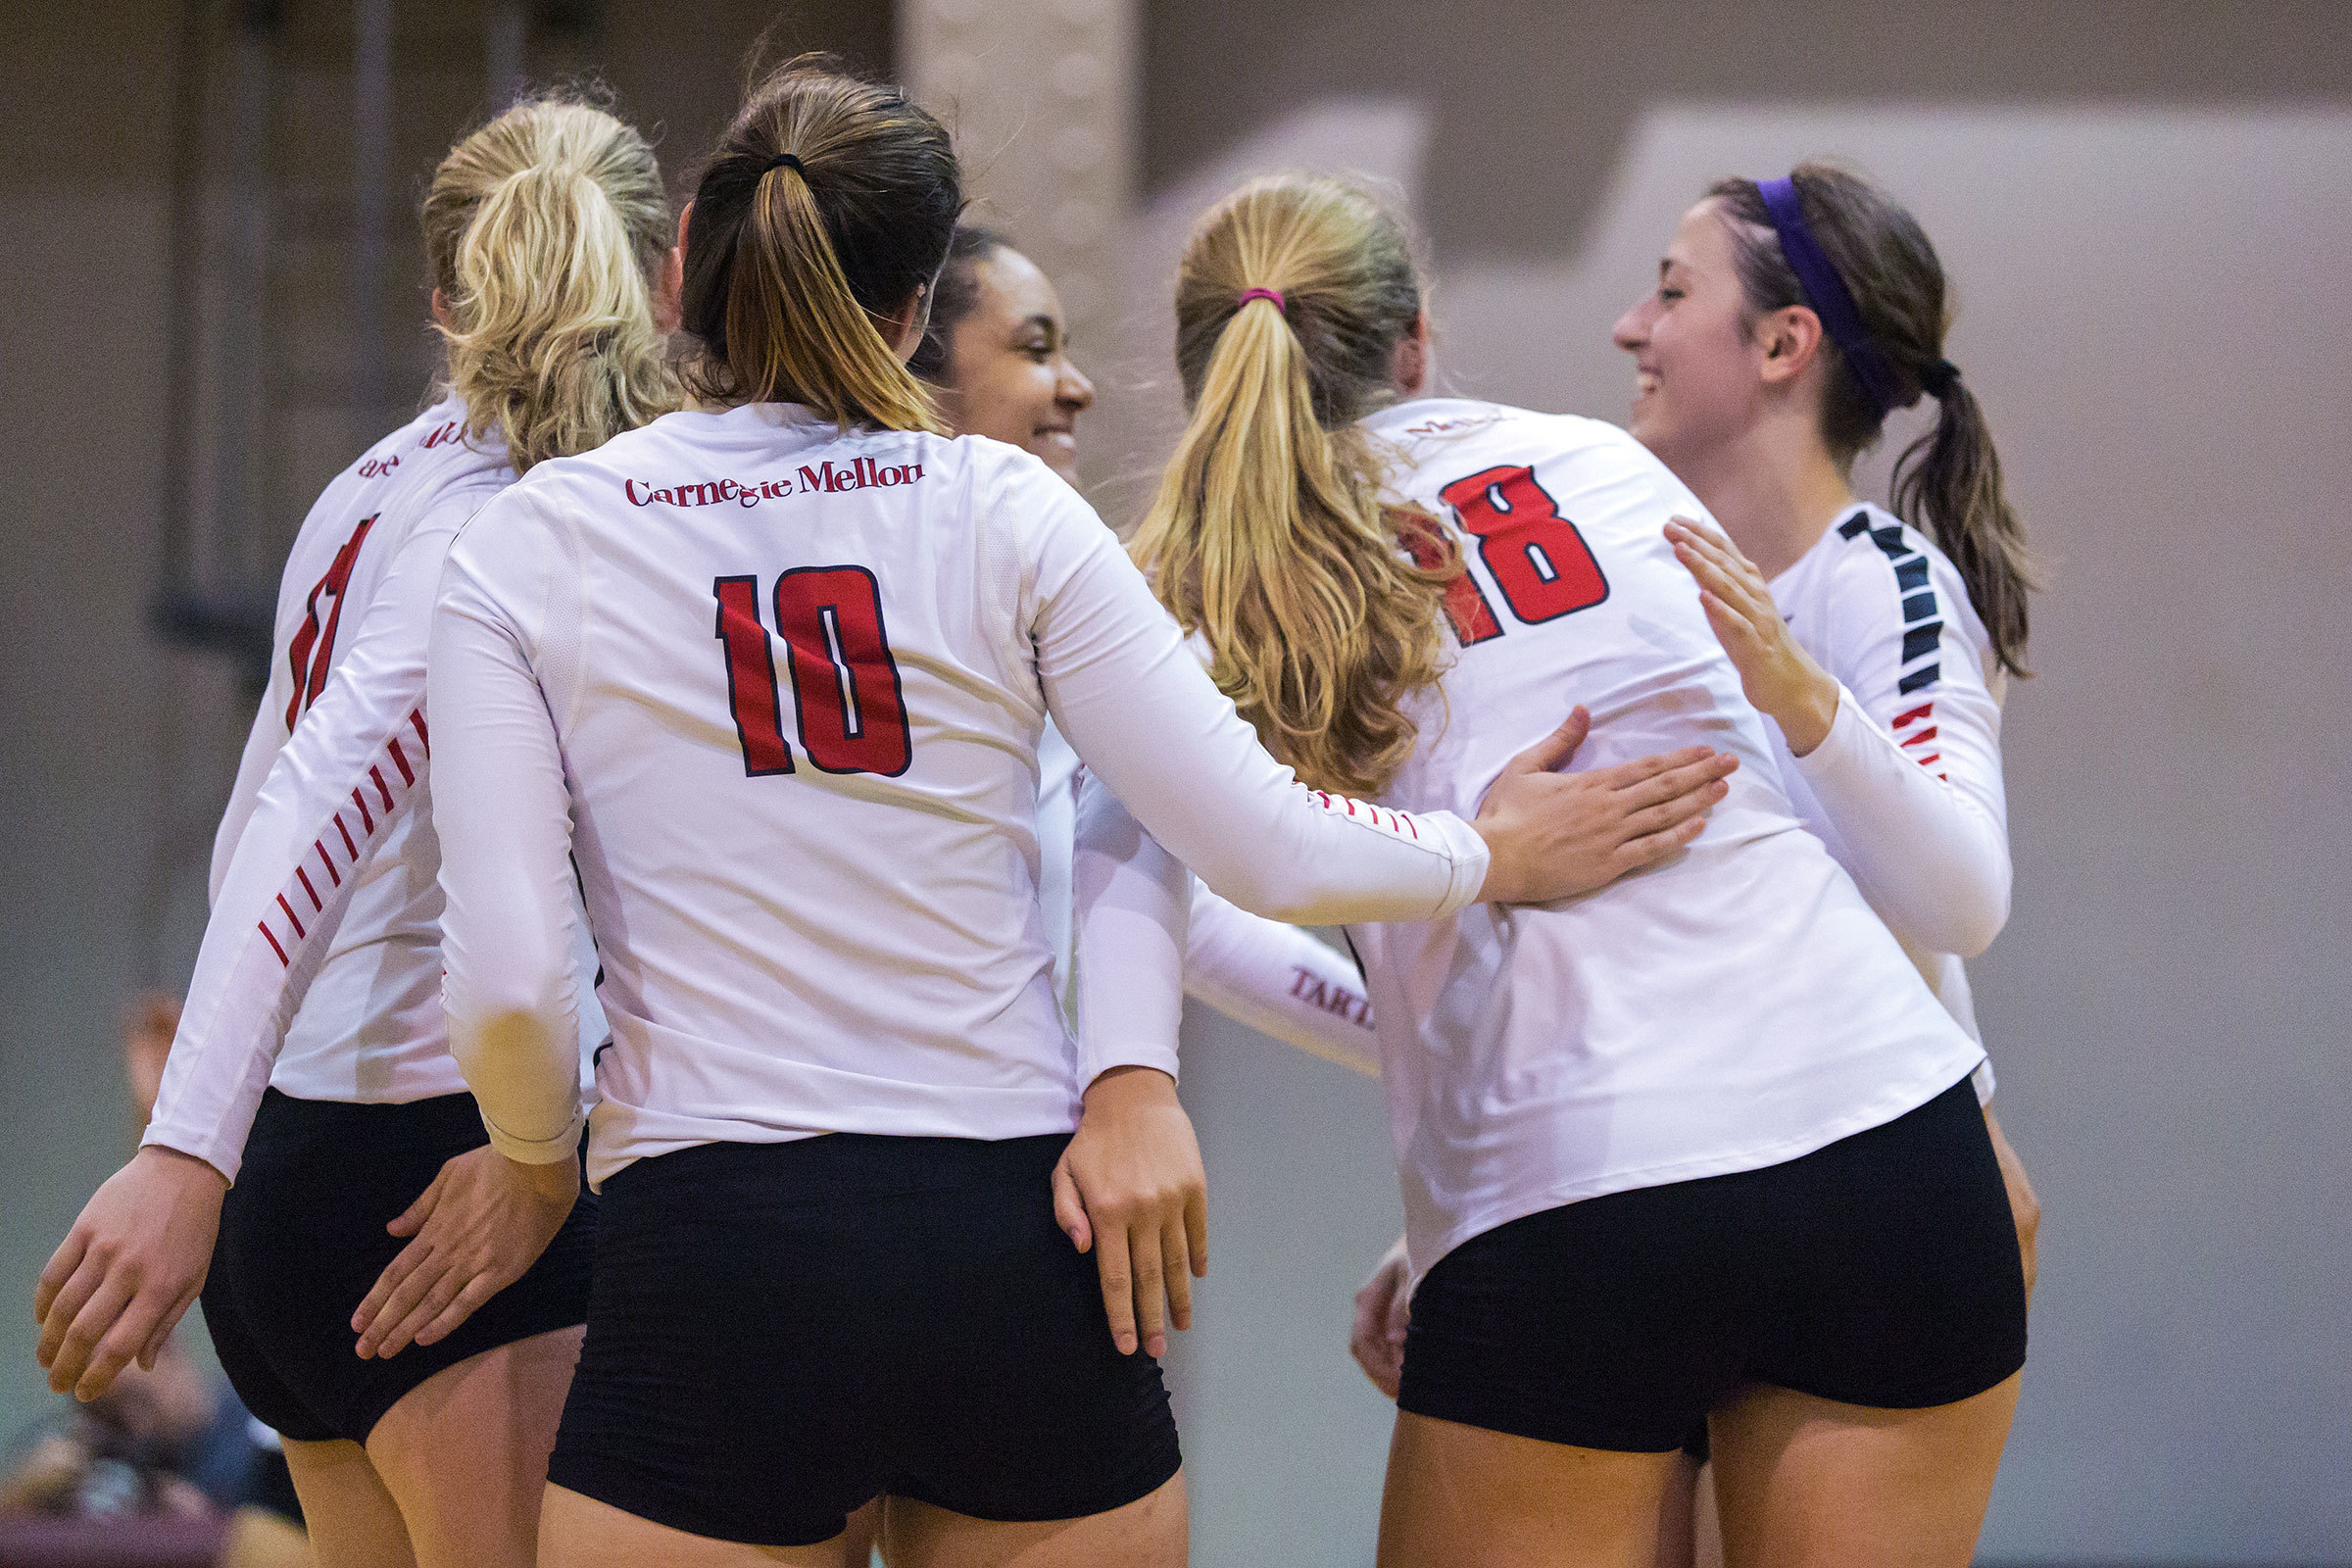 Sophomore outside hitter Hanna Wooten, first-year middle blocker Samantha Toomey, and others huddle. (credit: Junior Photographer)